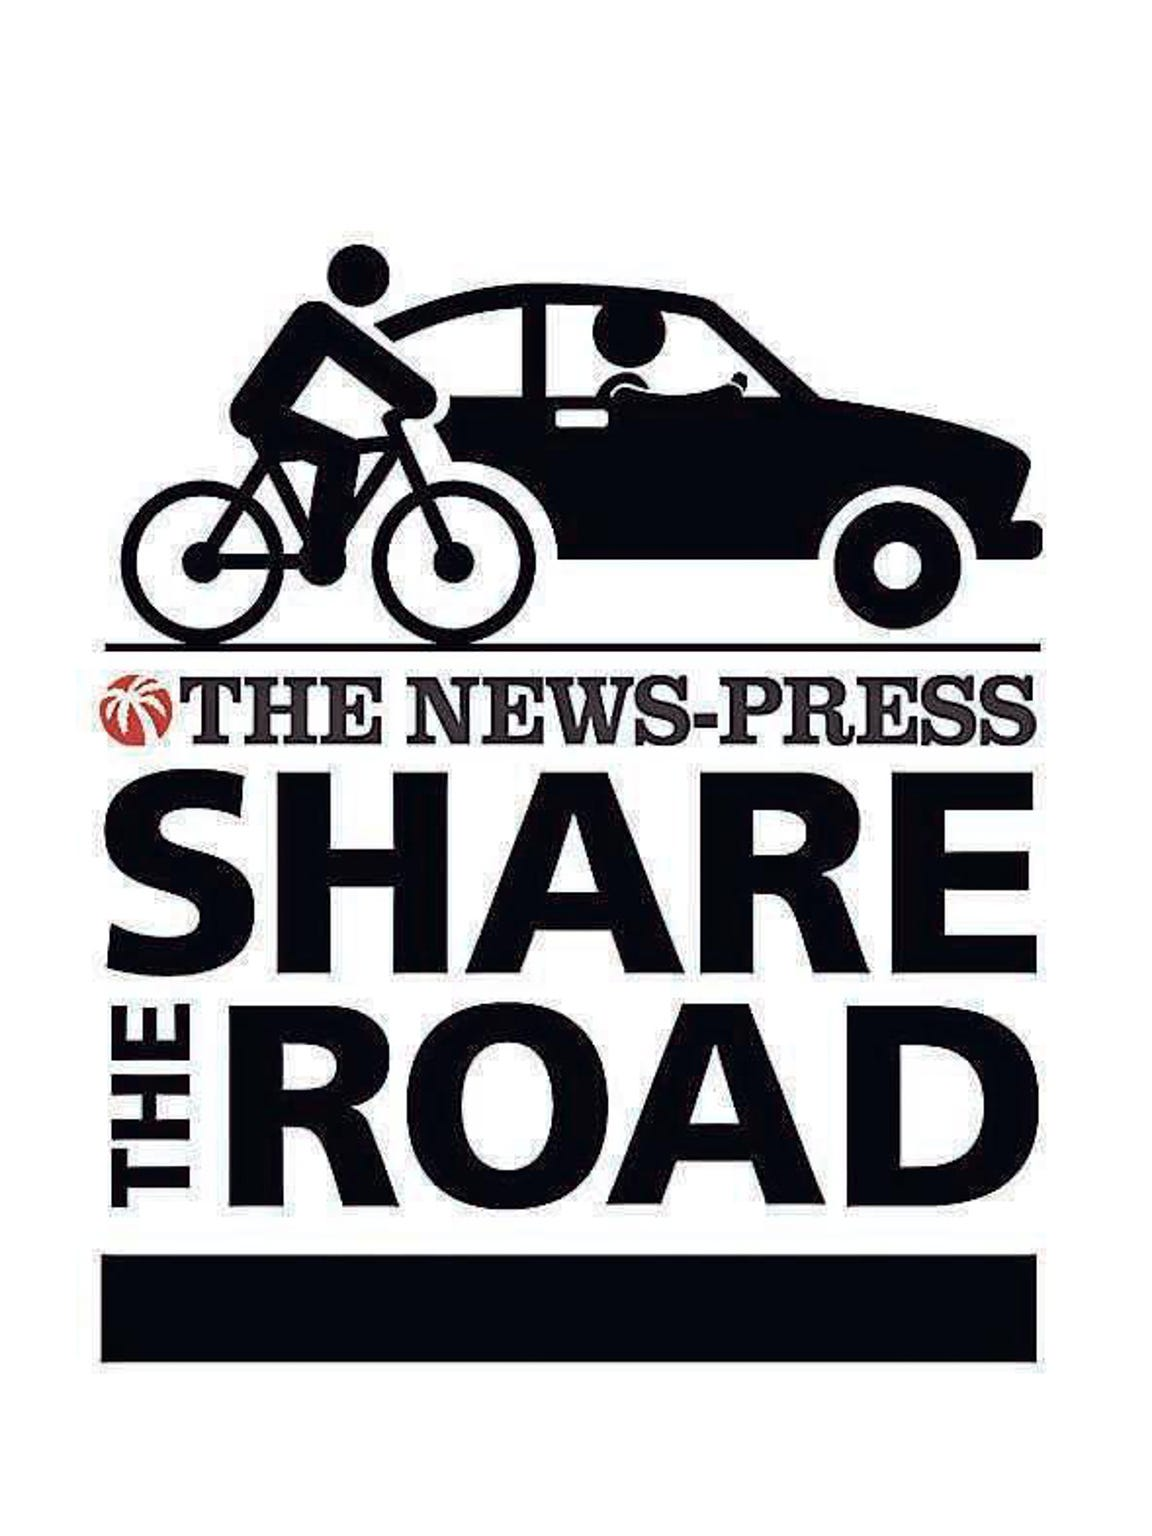 We have put cycling safety in Southwest Florida in